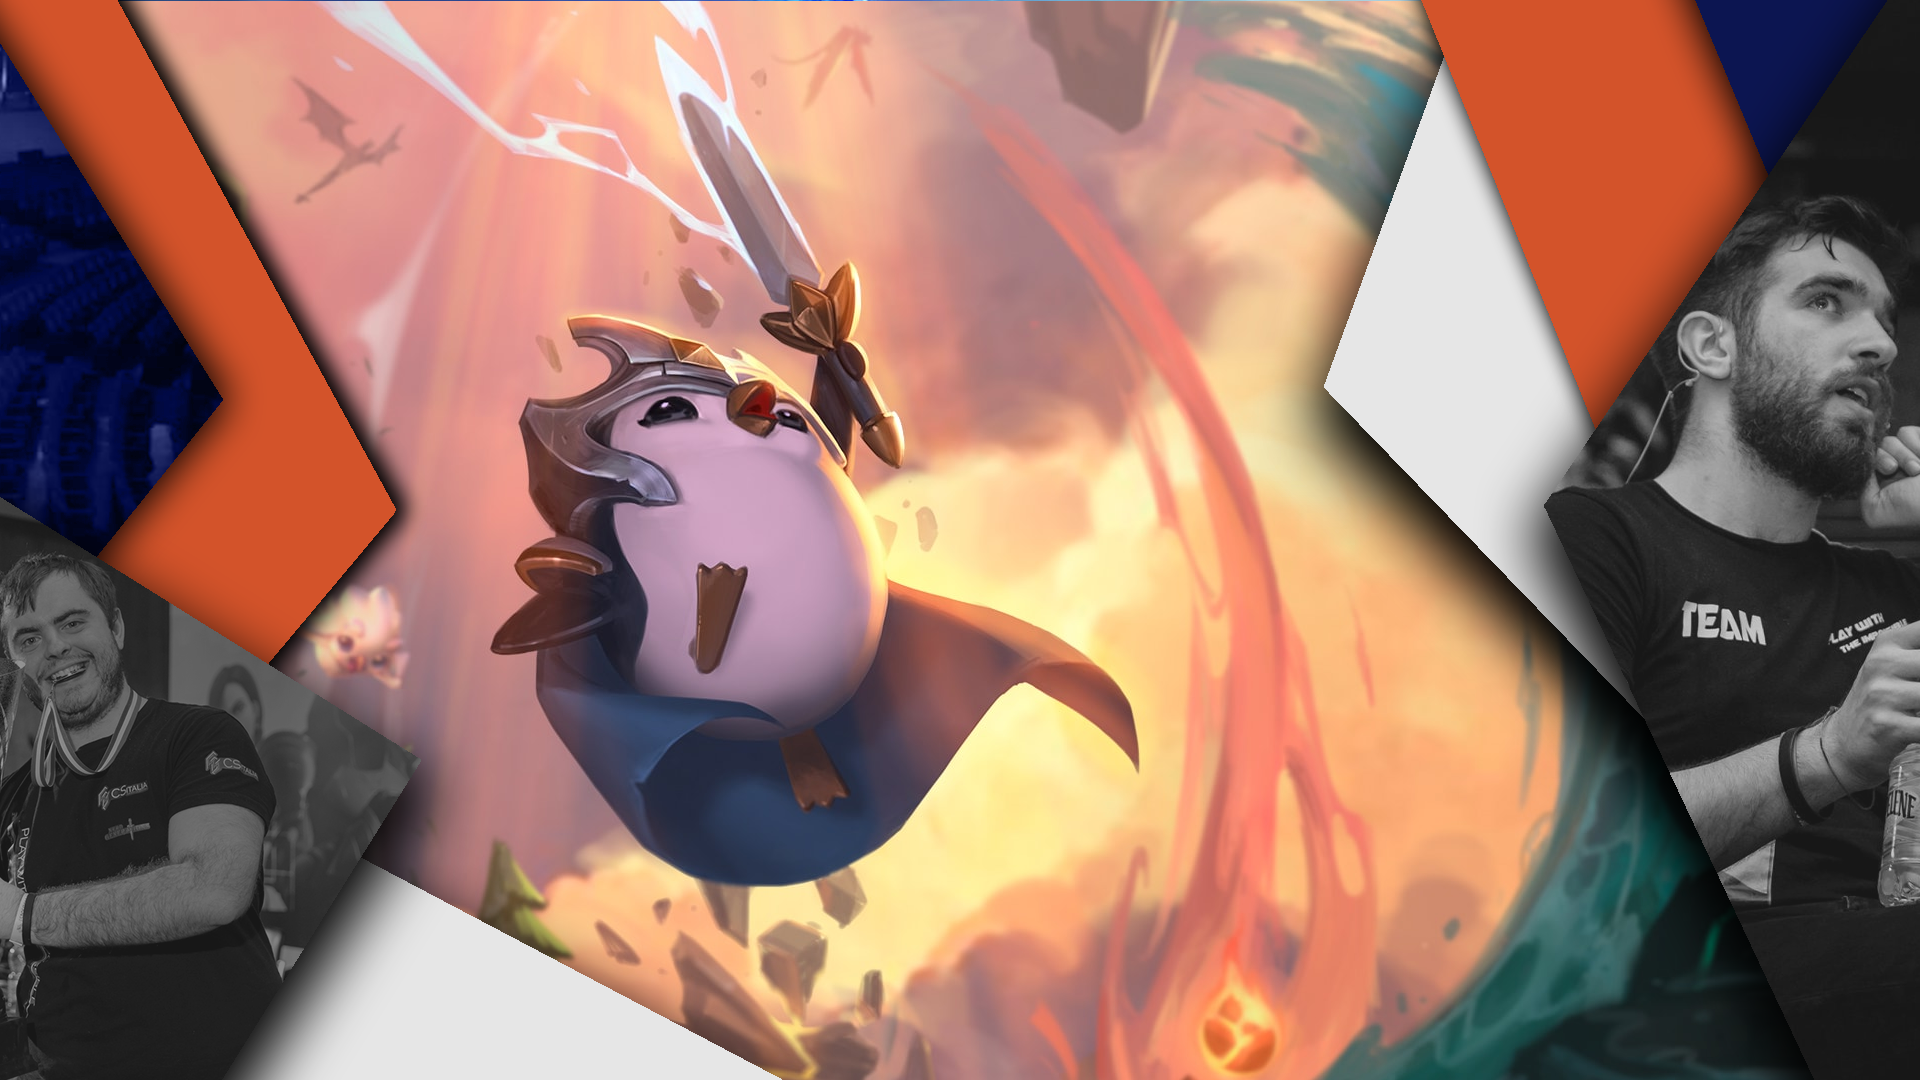 Teamfight Tactics Patch 10.15 Preview: What Should We Expect?